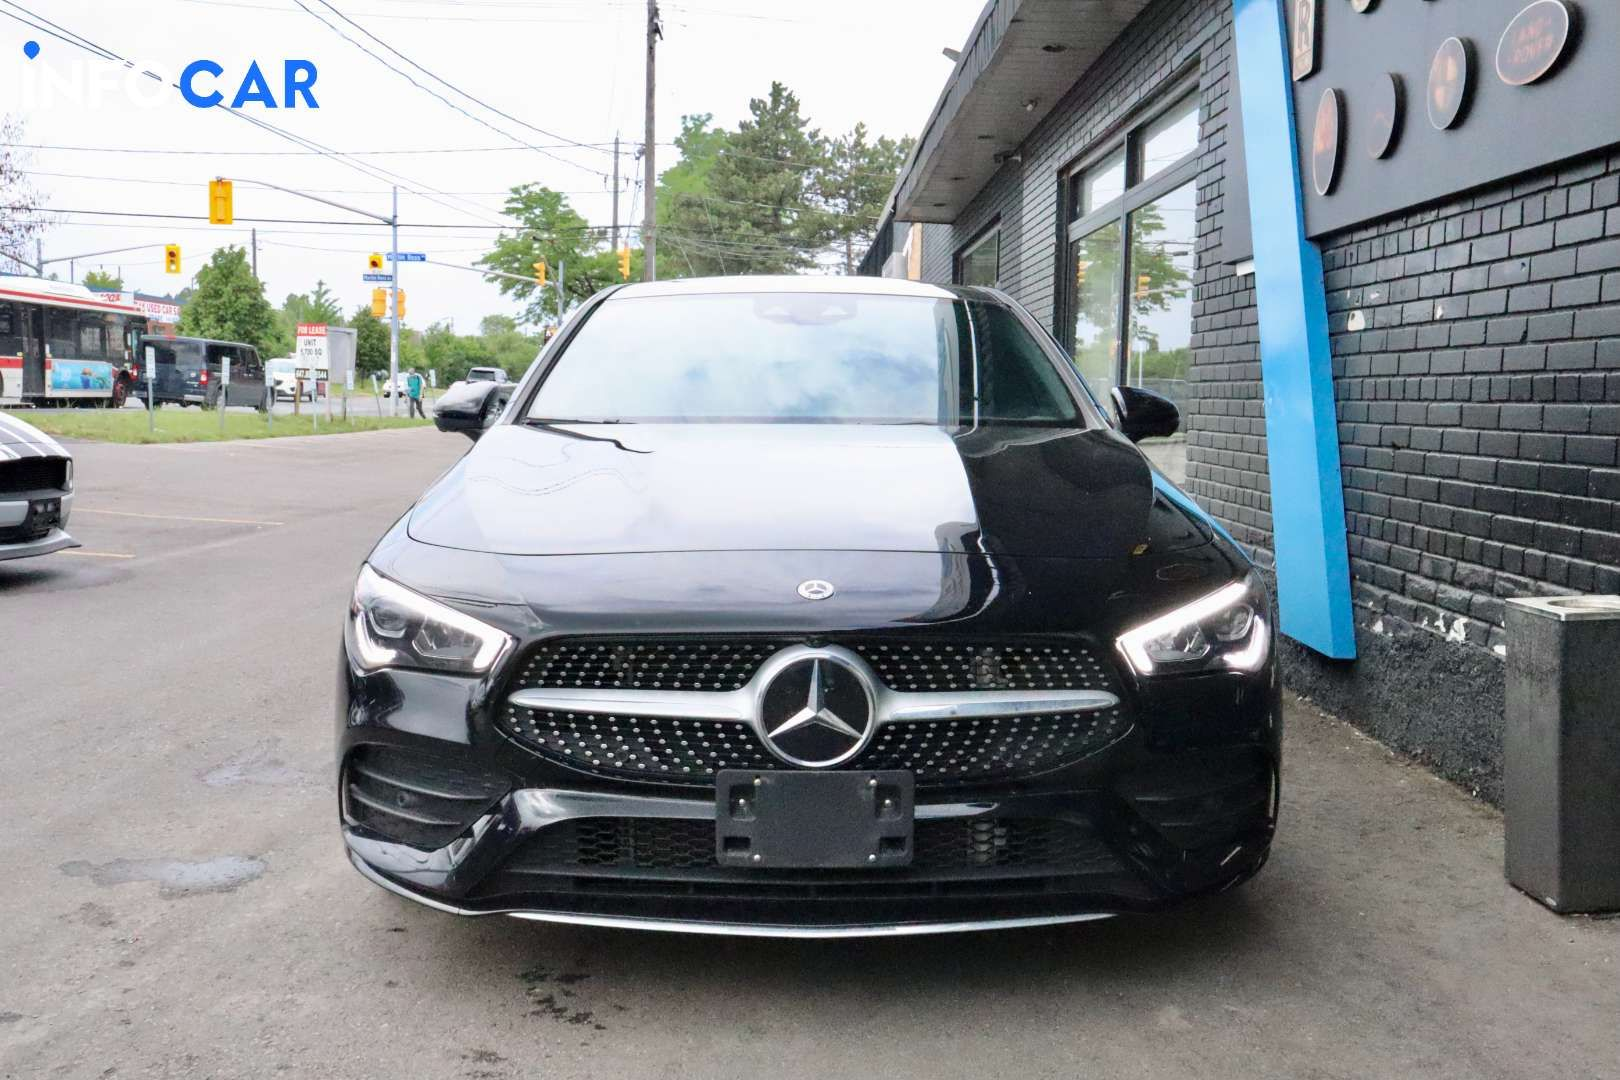 2020 Mercedes-Benz CLA-Class CLA250 4Matic - INFOCAR - Toronto's Most Comprehensive New and Used Auto Trading Platform